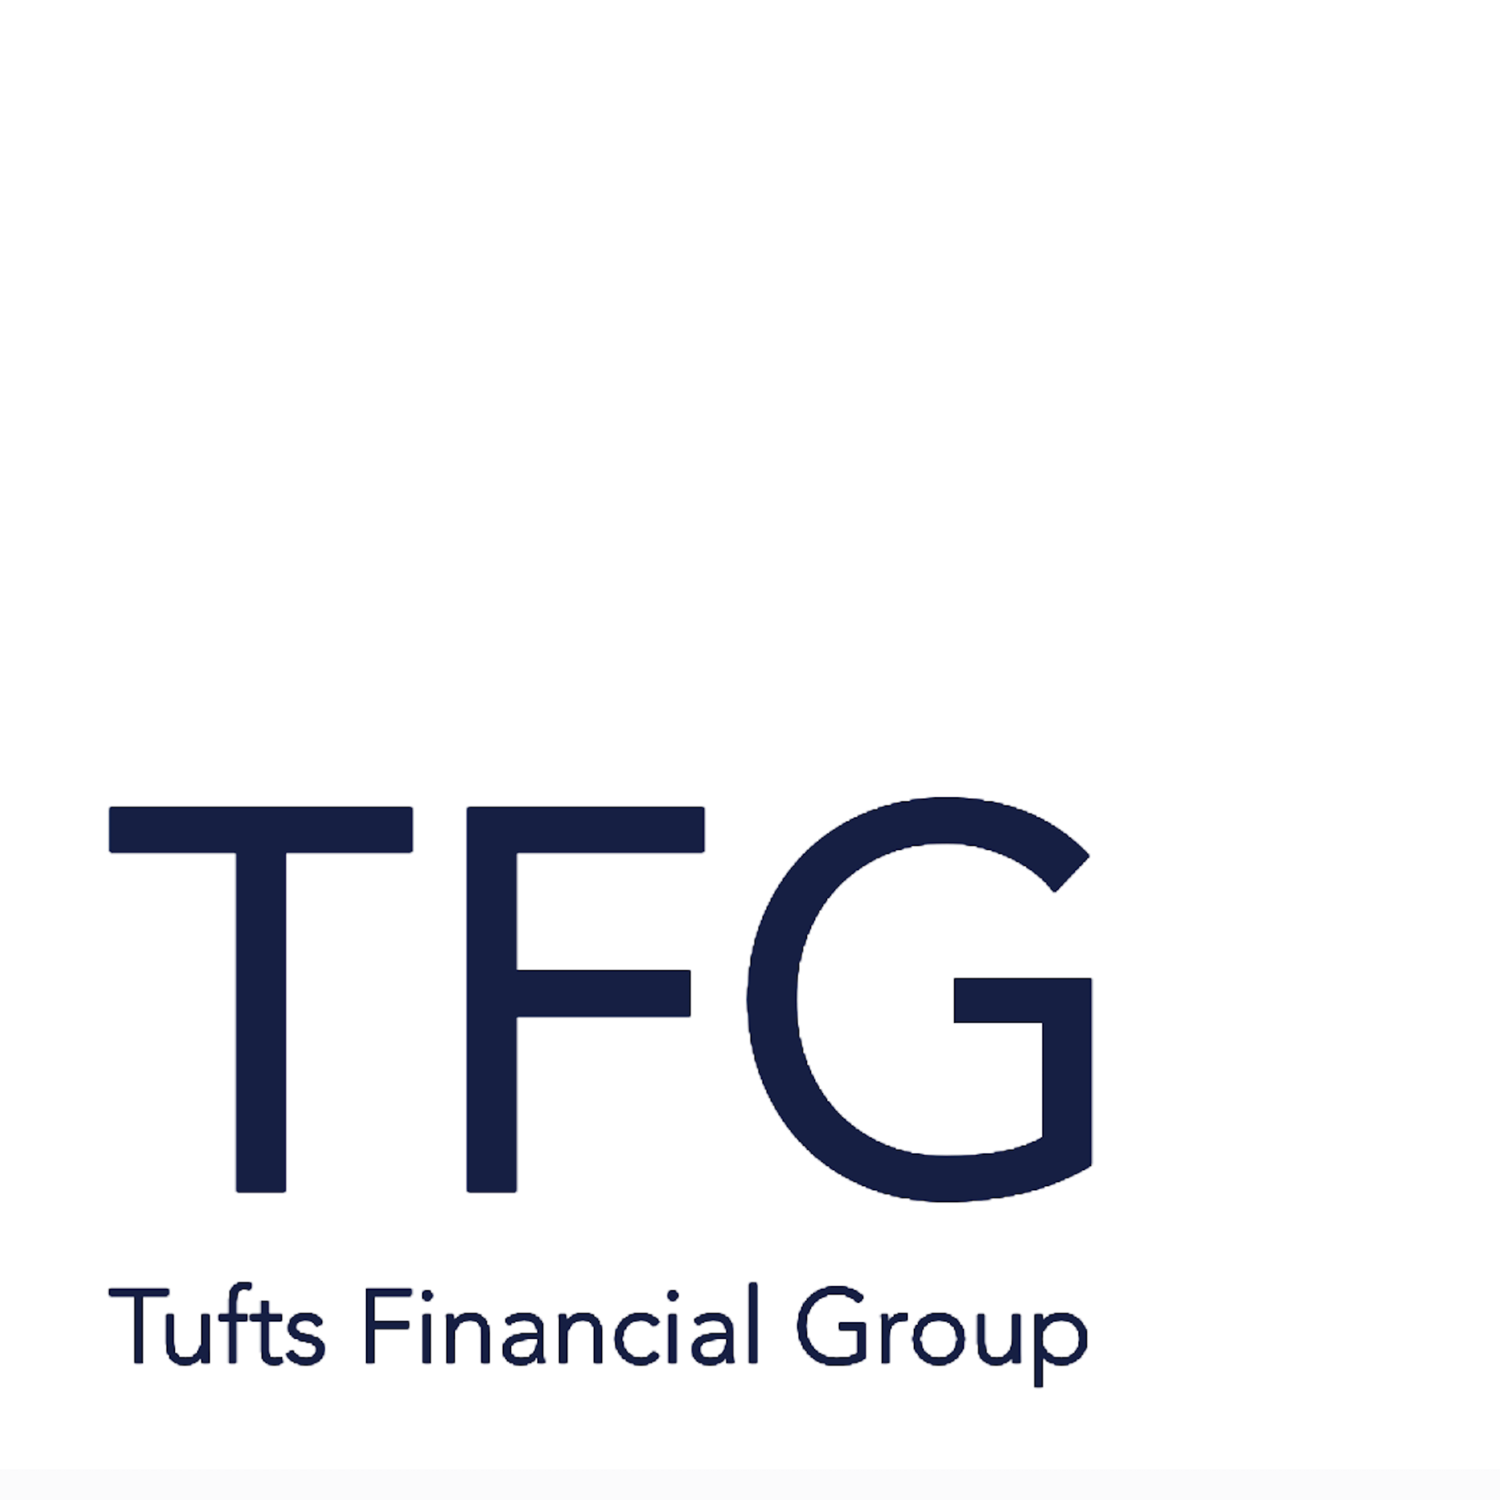 Tufts Financial Group